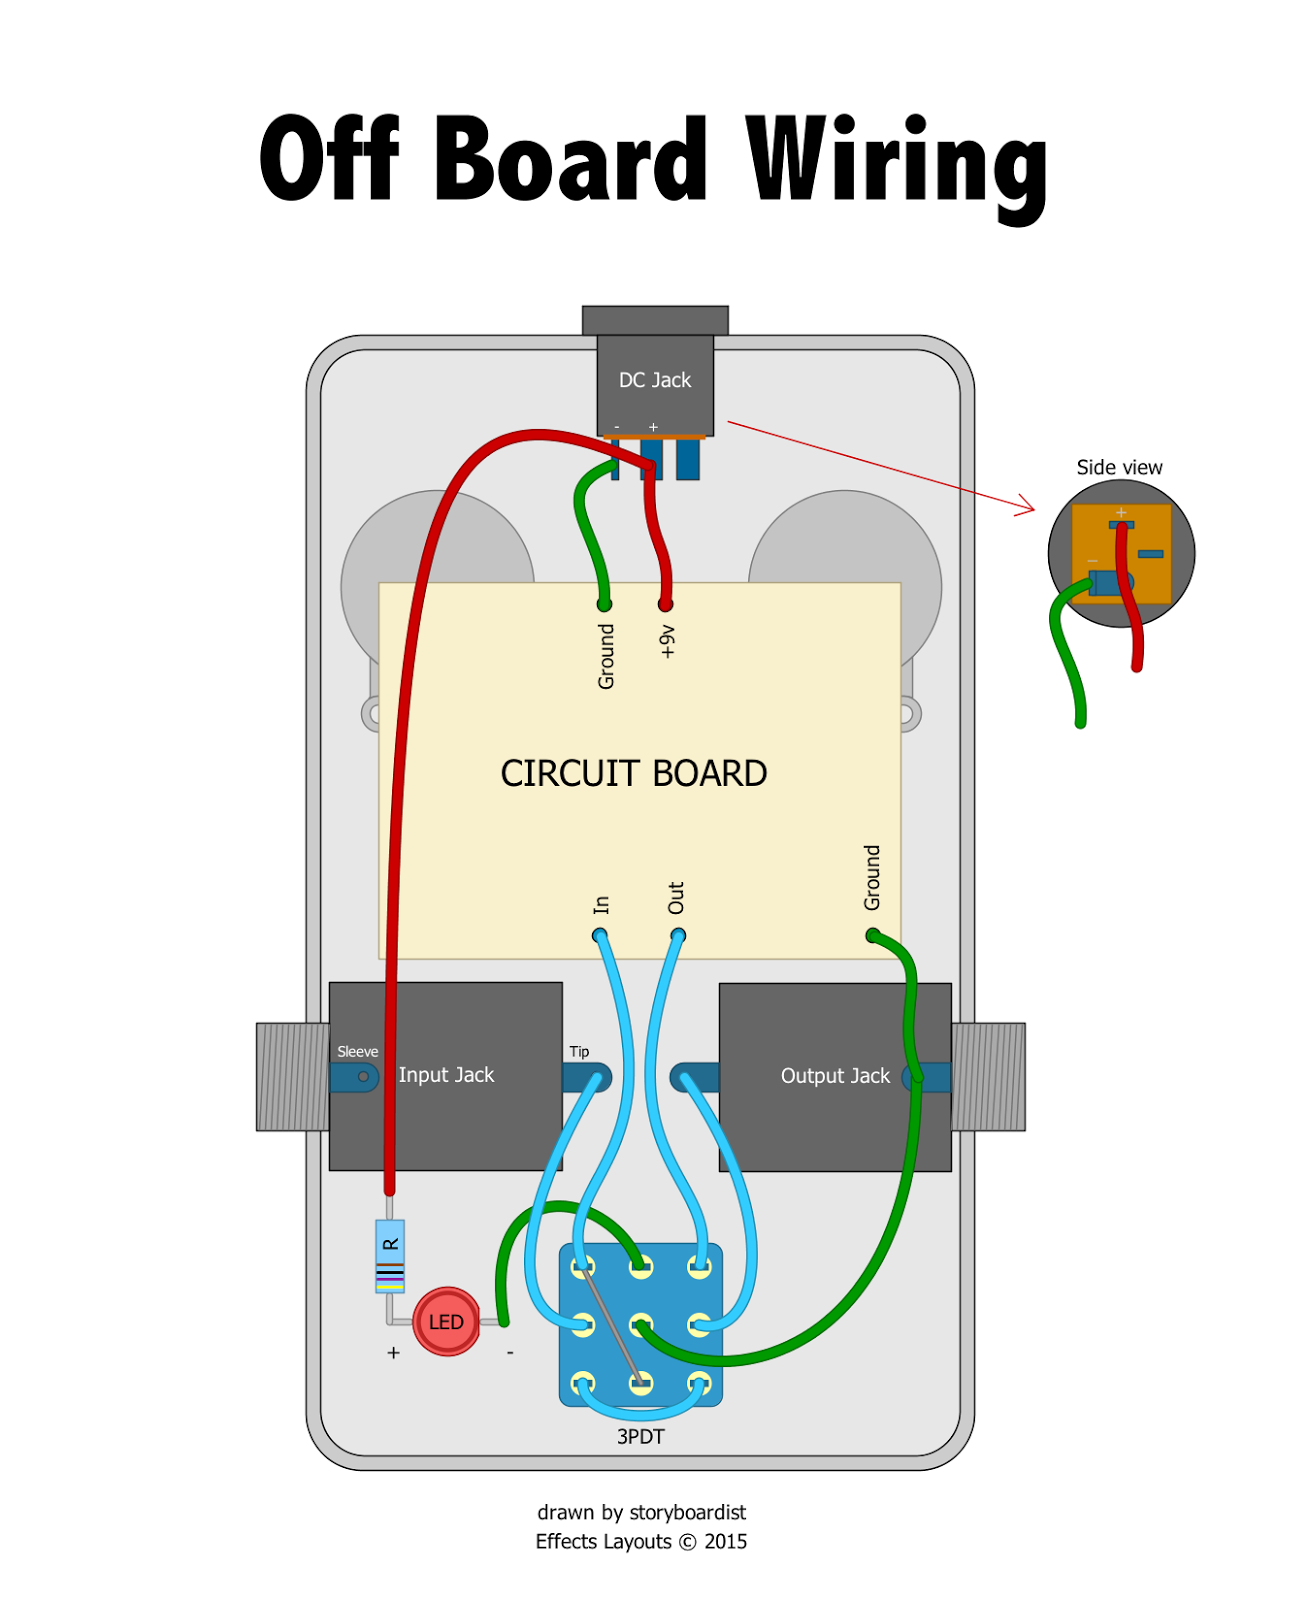 Guitar Jack Wiring Diagram Real Acoustic Perf And Pcb Effects Layouts General Layout Notes Input Stereo